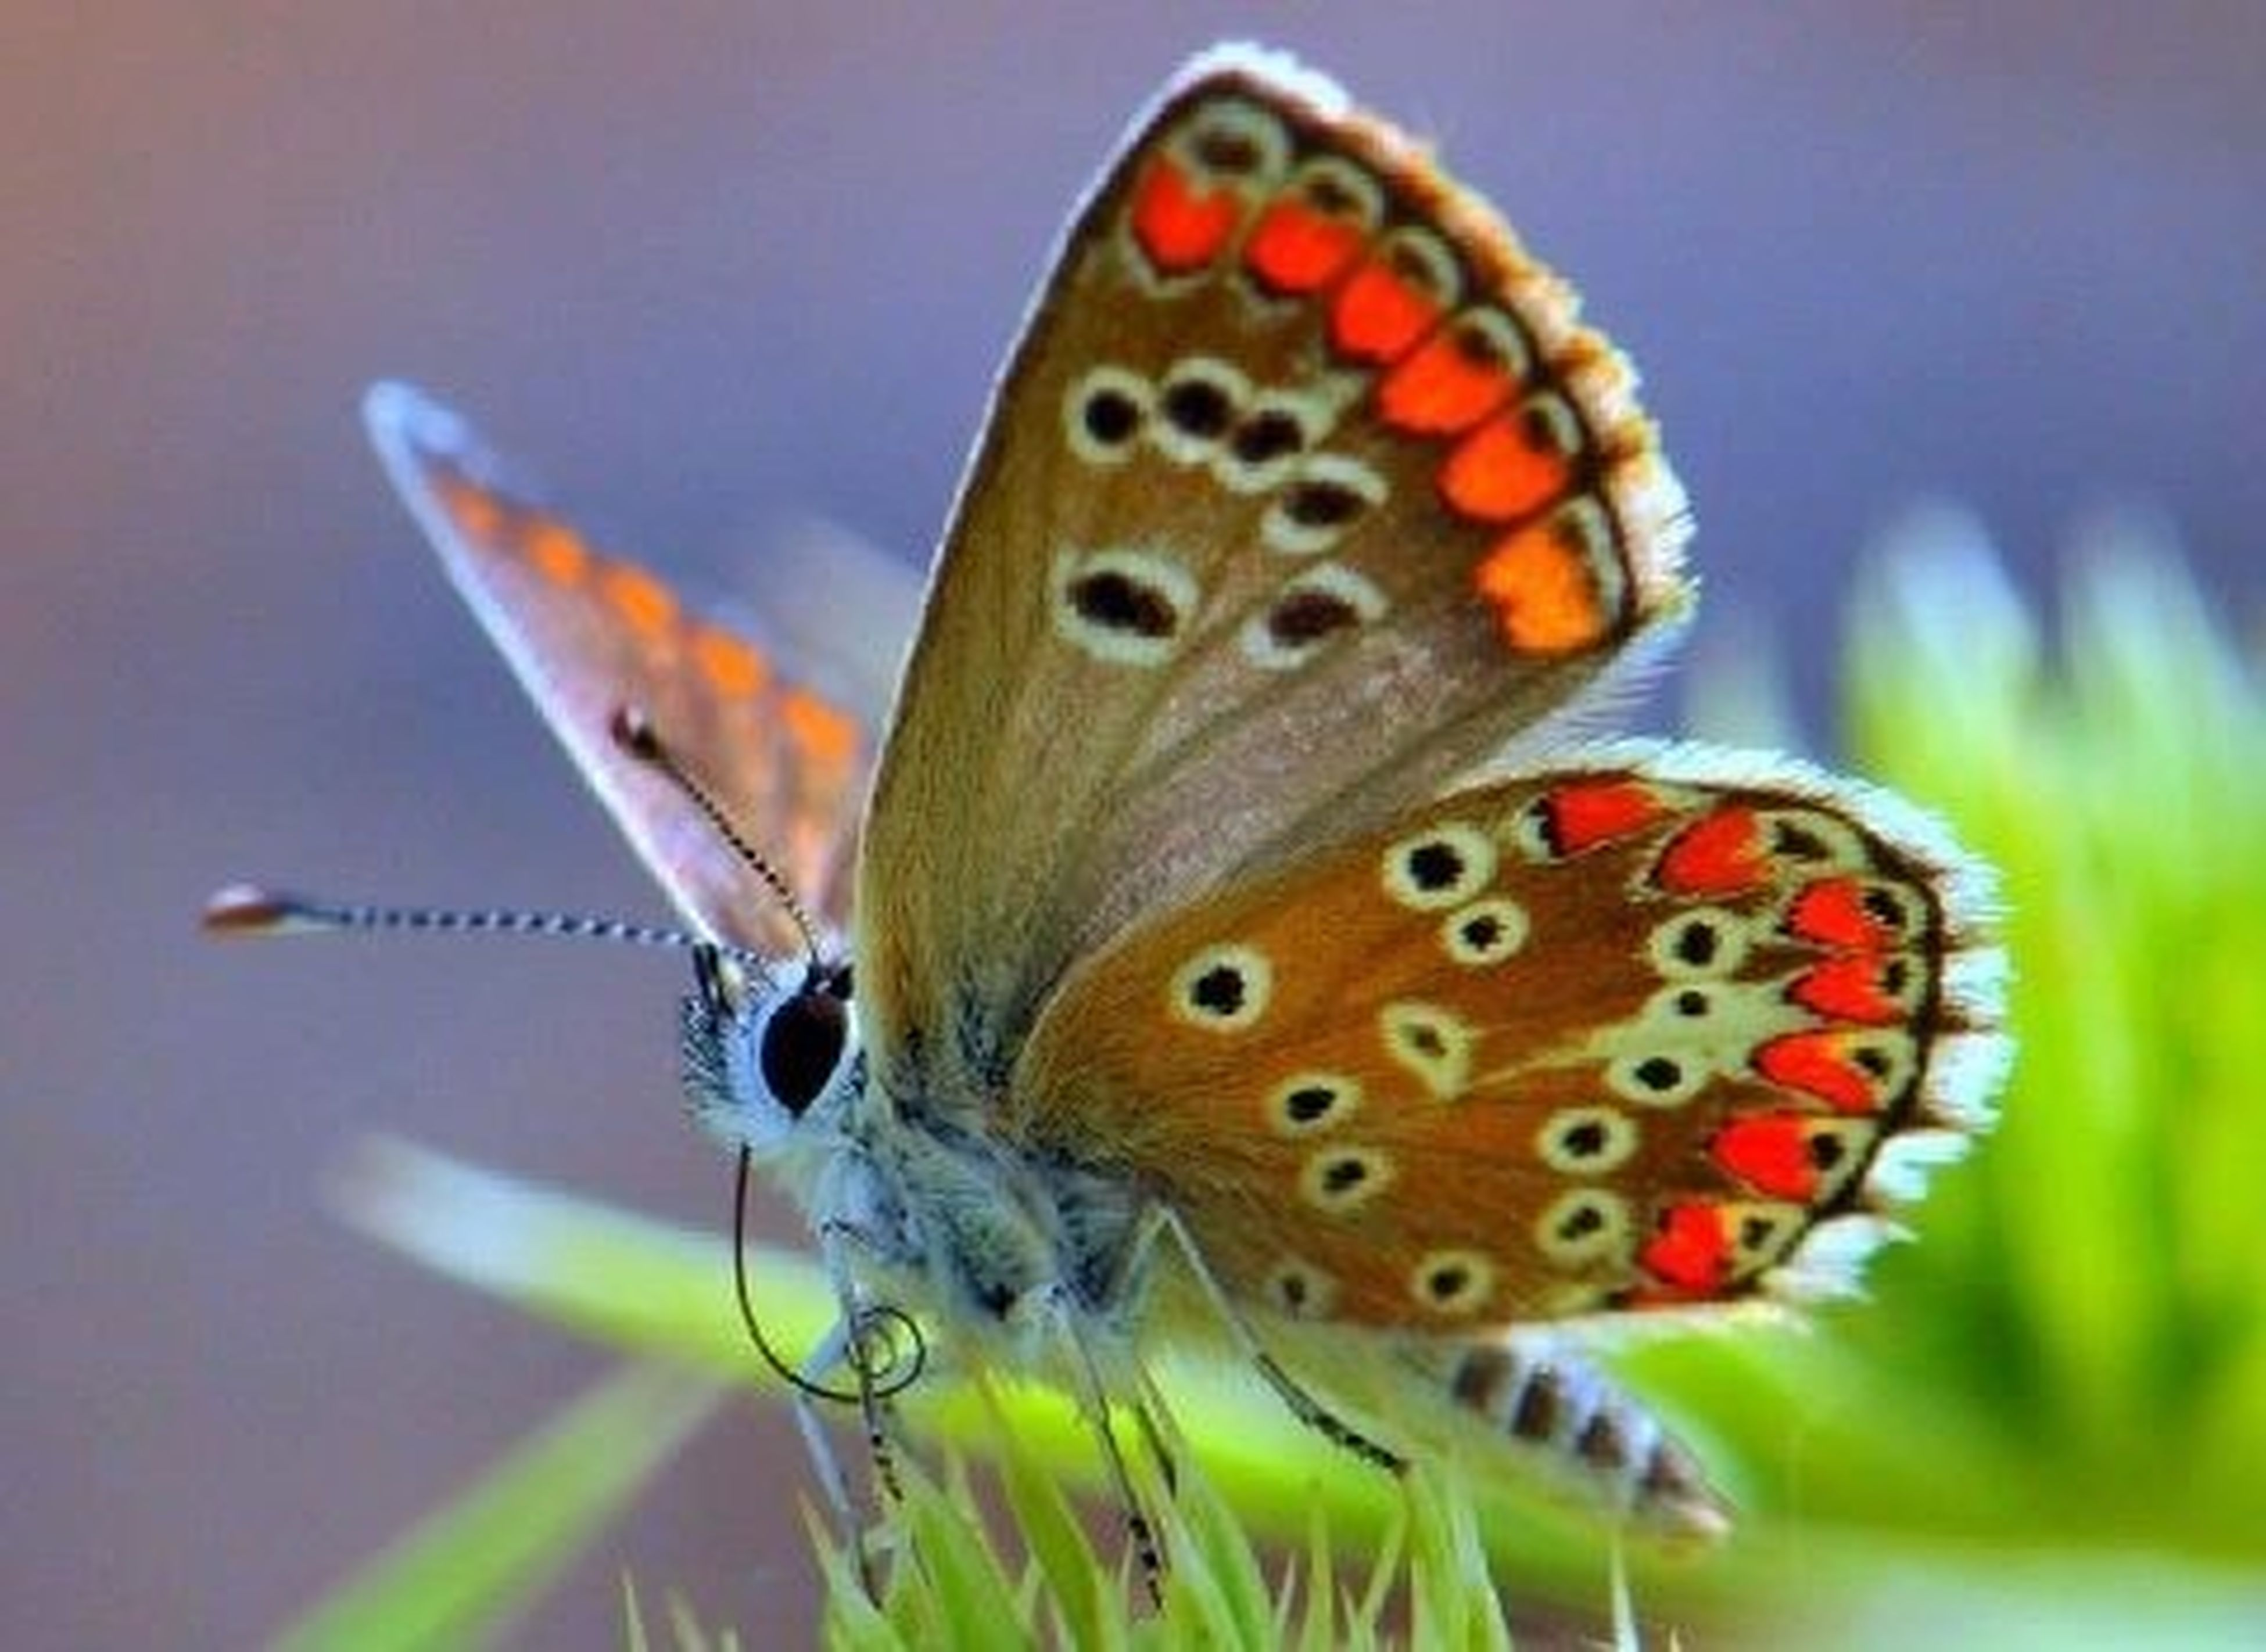 animal themes, animals in the wild, one animal, insect, wildlife, animal markings, close-up, butterfly - insect, butterfly, animal wing, focus on foreground, spotted, natural pattern, animal antenna, ladybug, selective focus, nature, beauty in nature, orange color, no people